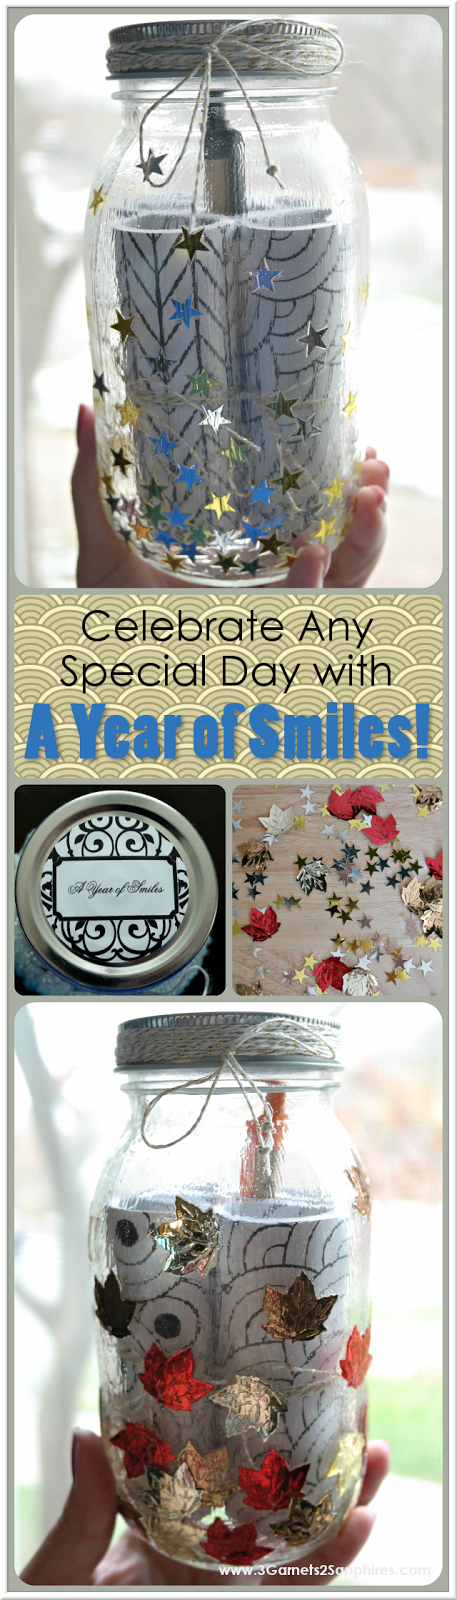 DIY 'A Year of Smiles' Beaded Mason Jar Gift How-To  |  3 Garnets & 2 Sapphires